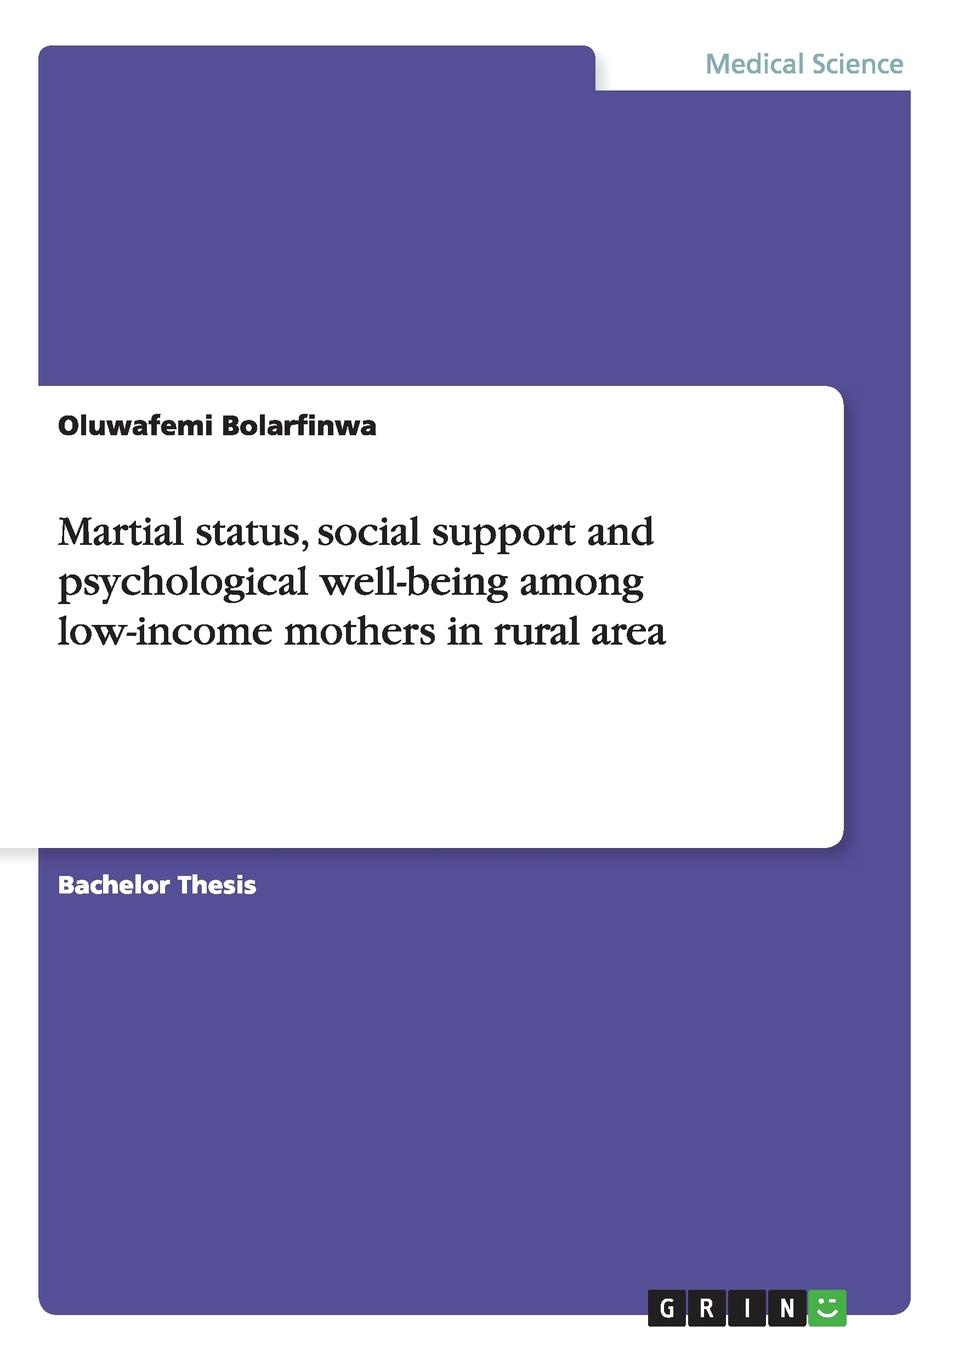 Oluwafemi Bolarfinwa Martial status, social support and psychological well-being among low-income mothers in rural area gender inequity and reproductive health status of rural women